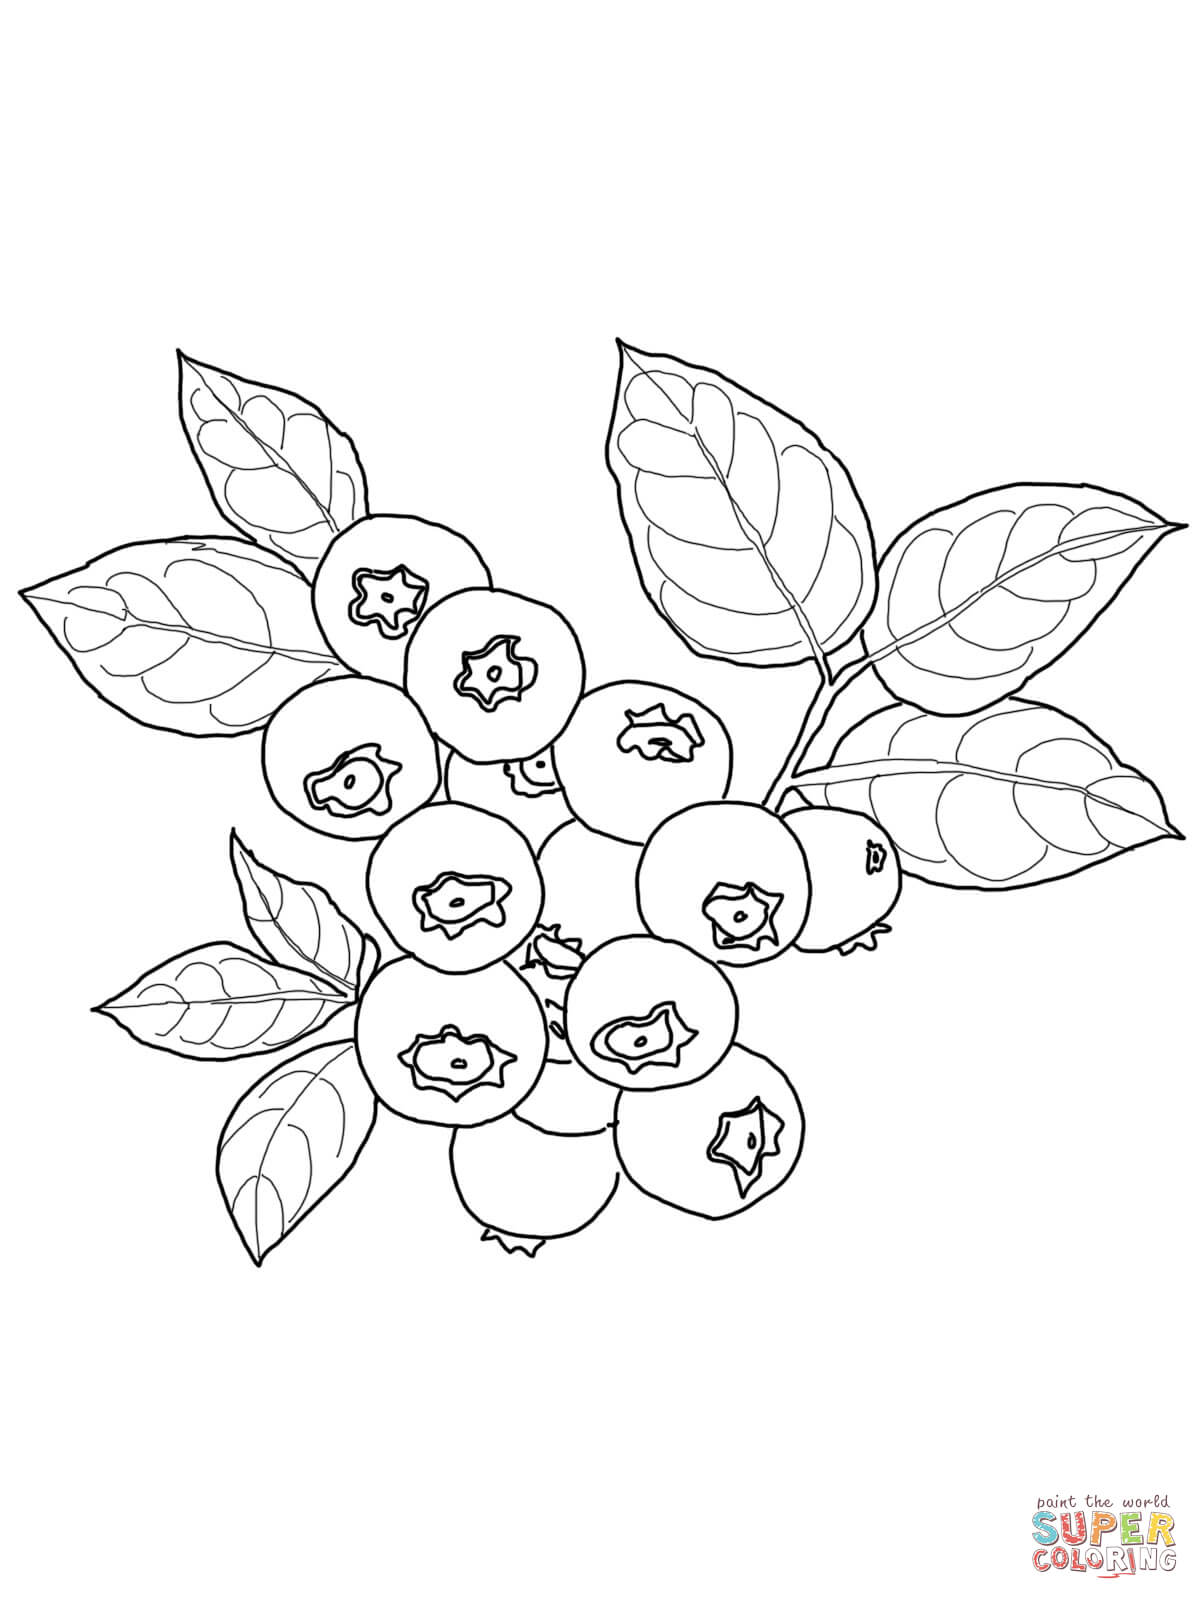 blueberry coloring page blueberries coloring pages to download and print for free coloring page blueberry